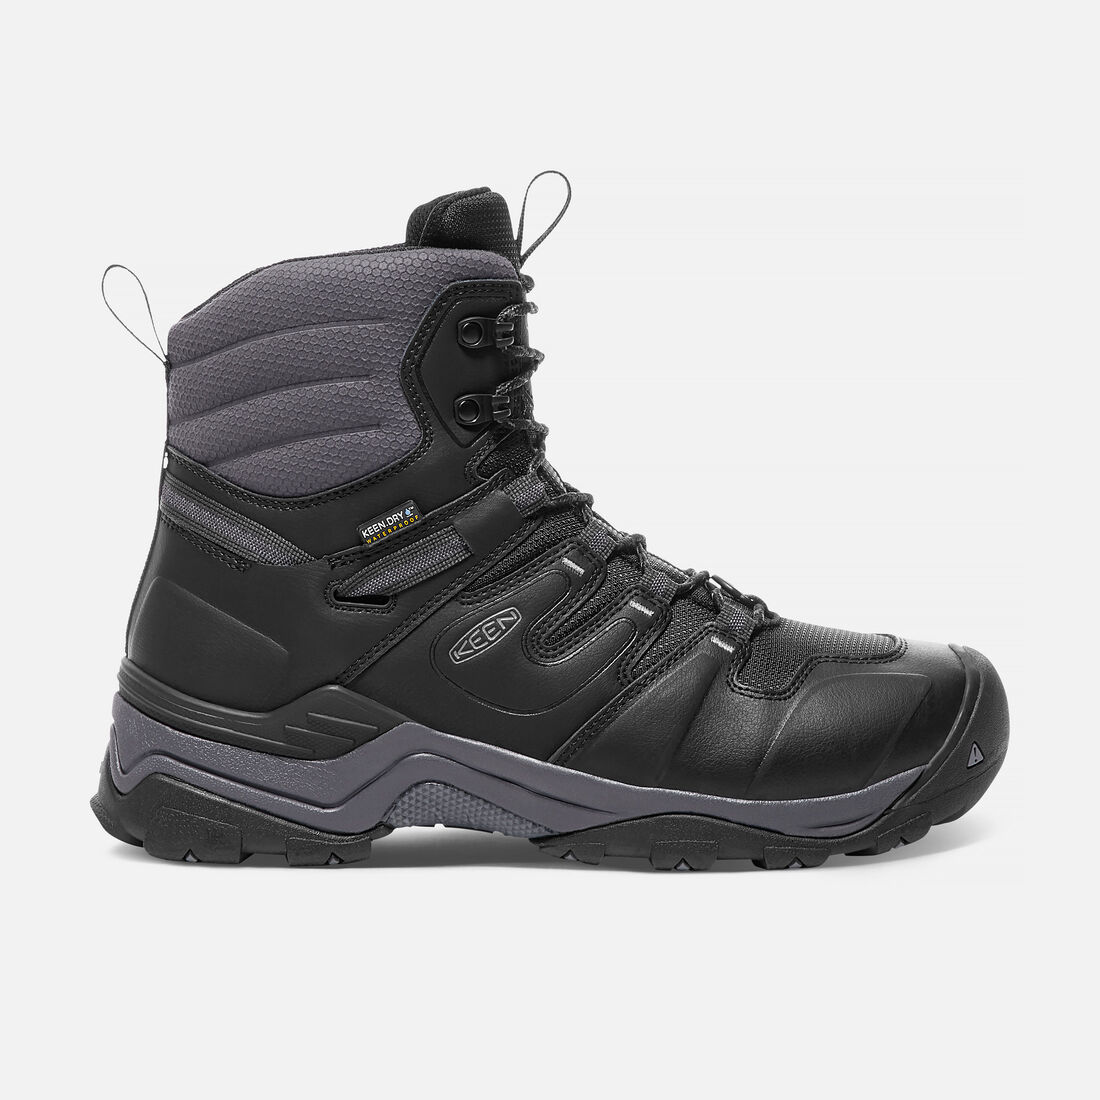 Men's GYPSUM POLAR Waterproof Boot in Black/Steel Grey - large view.